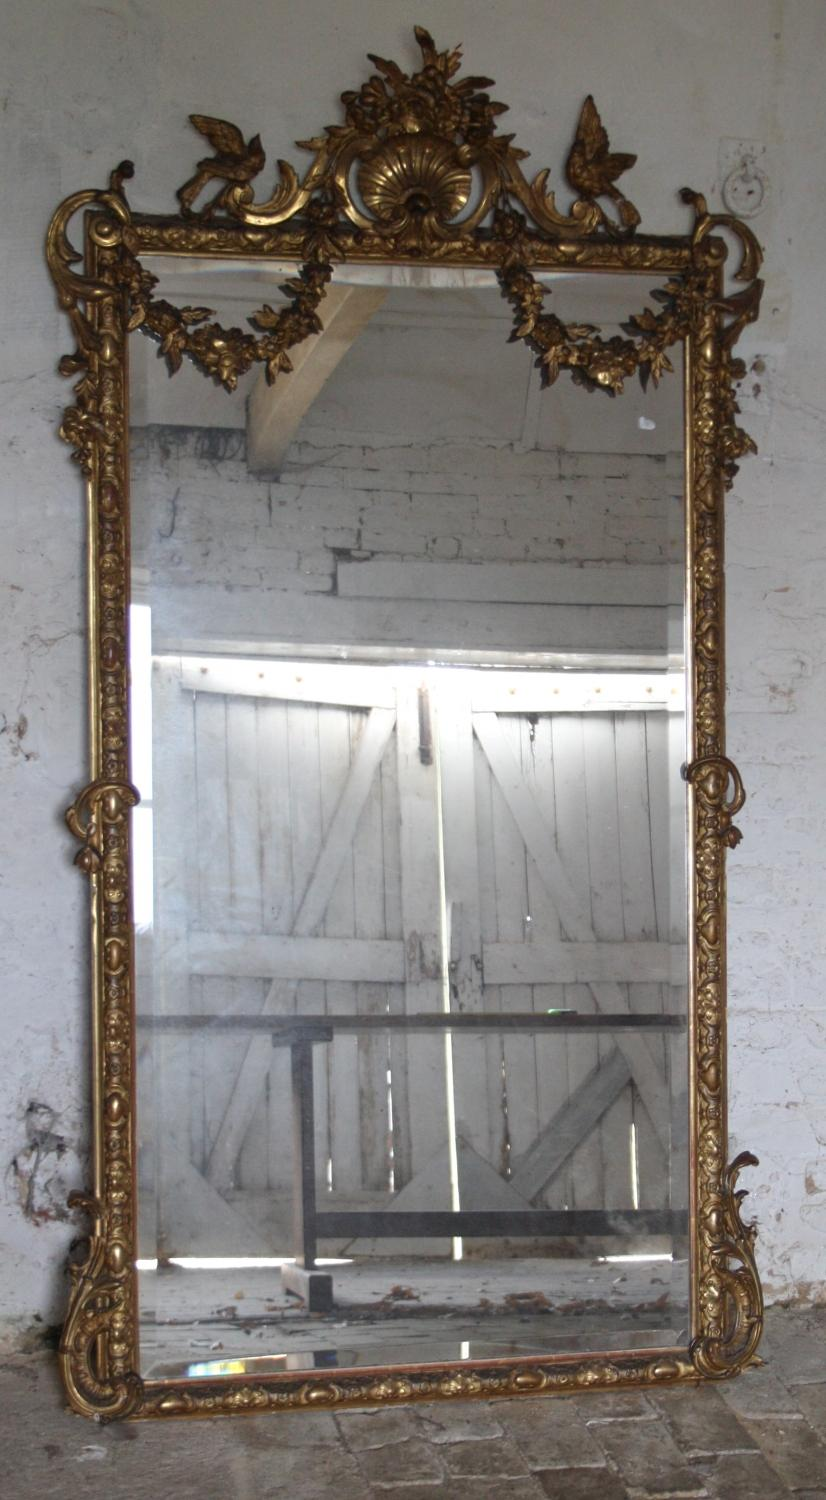 Large French gilt mirror - C19th